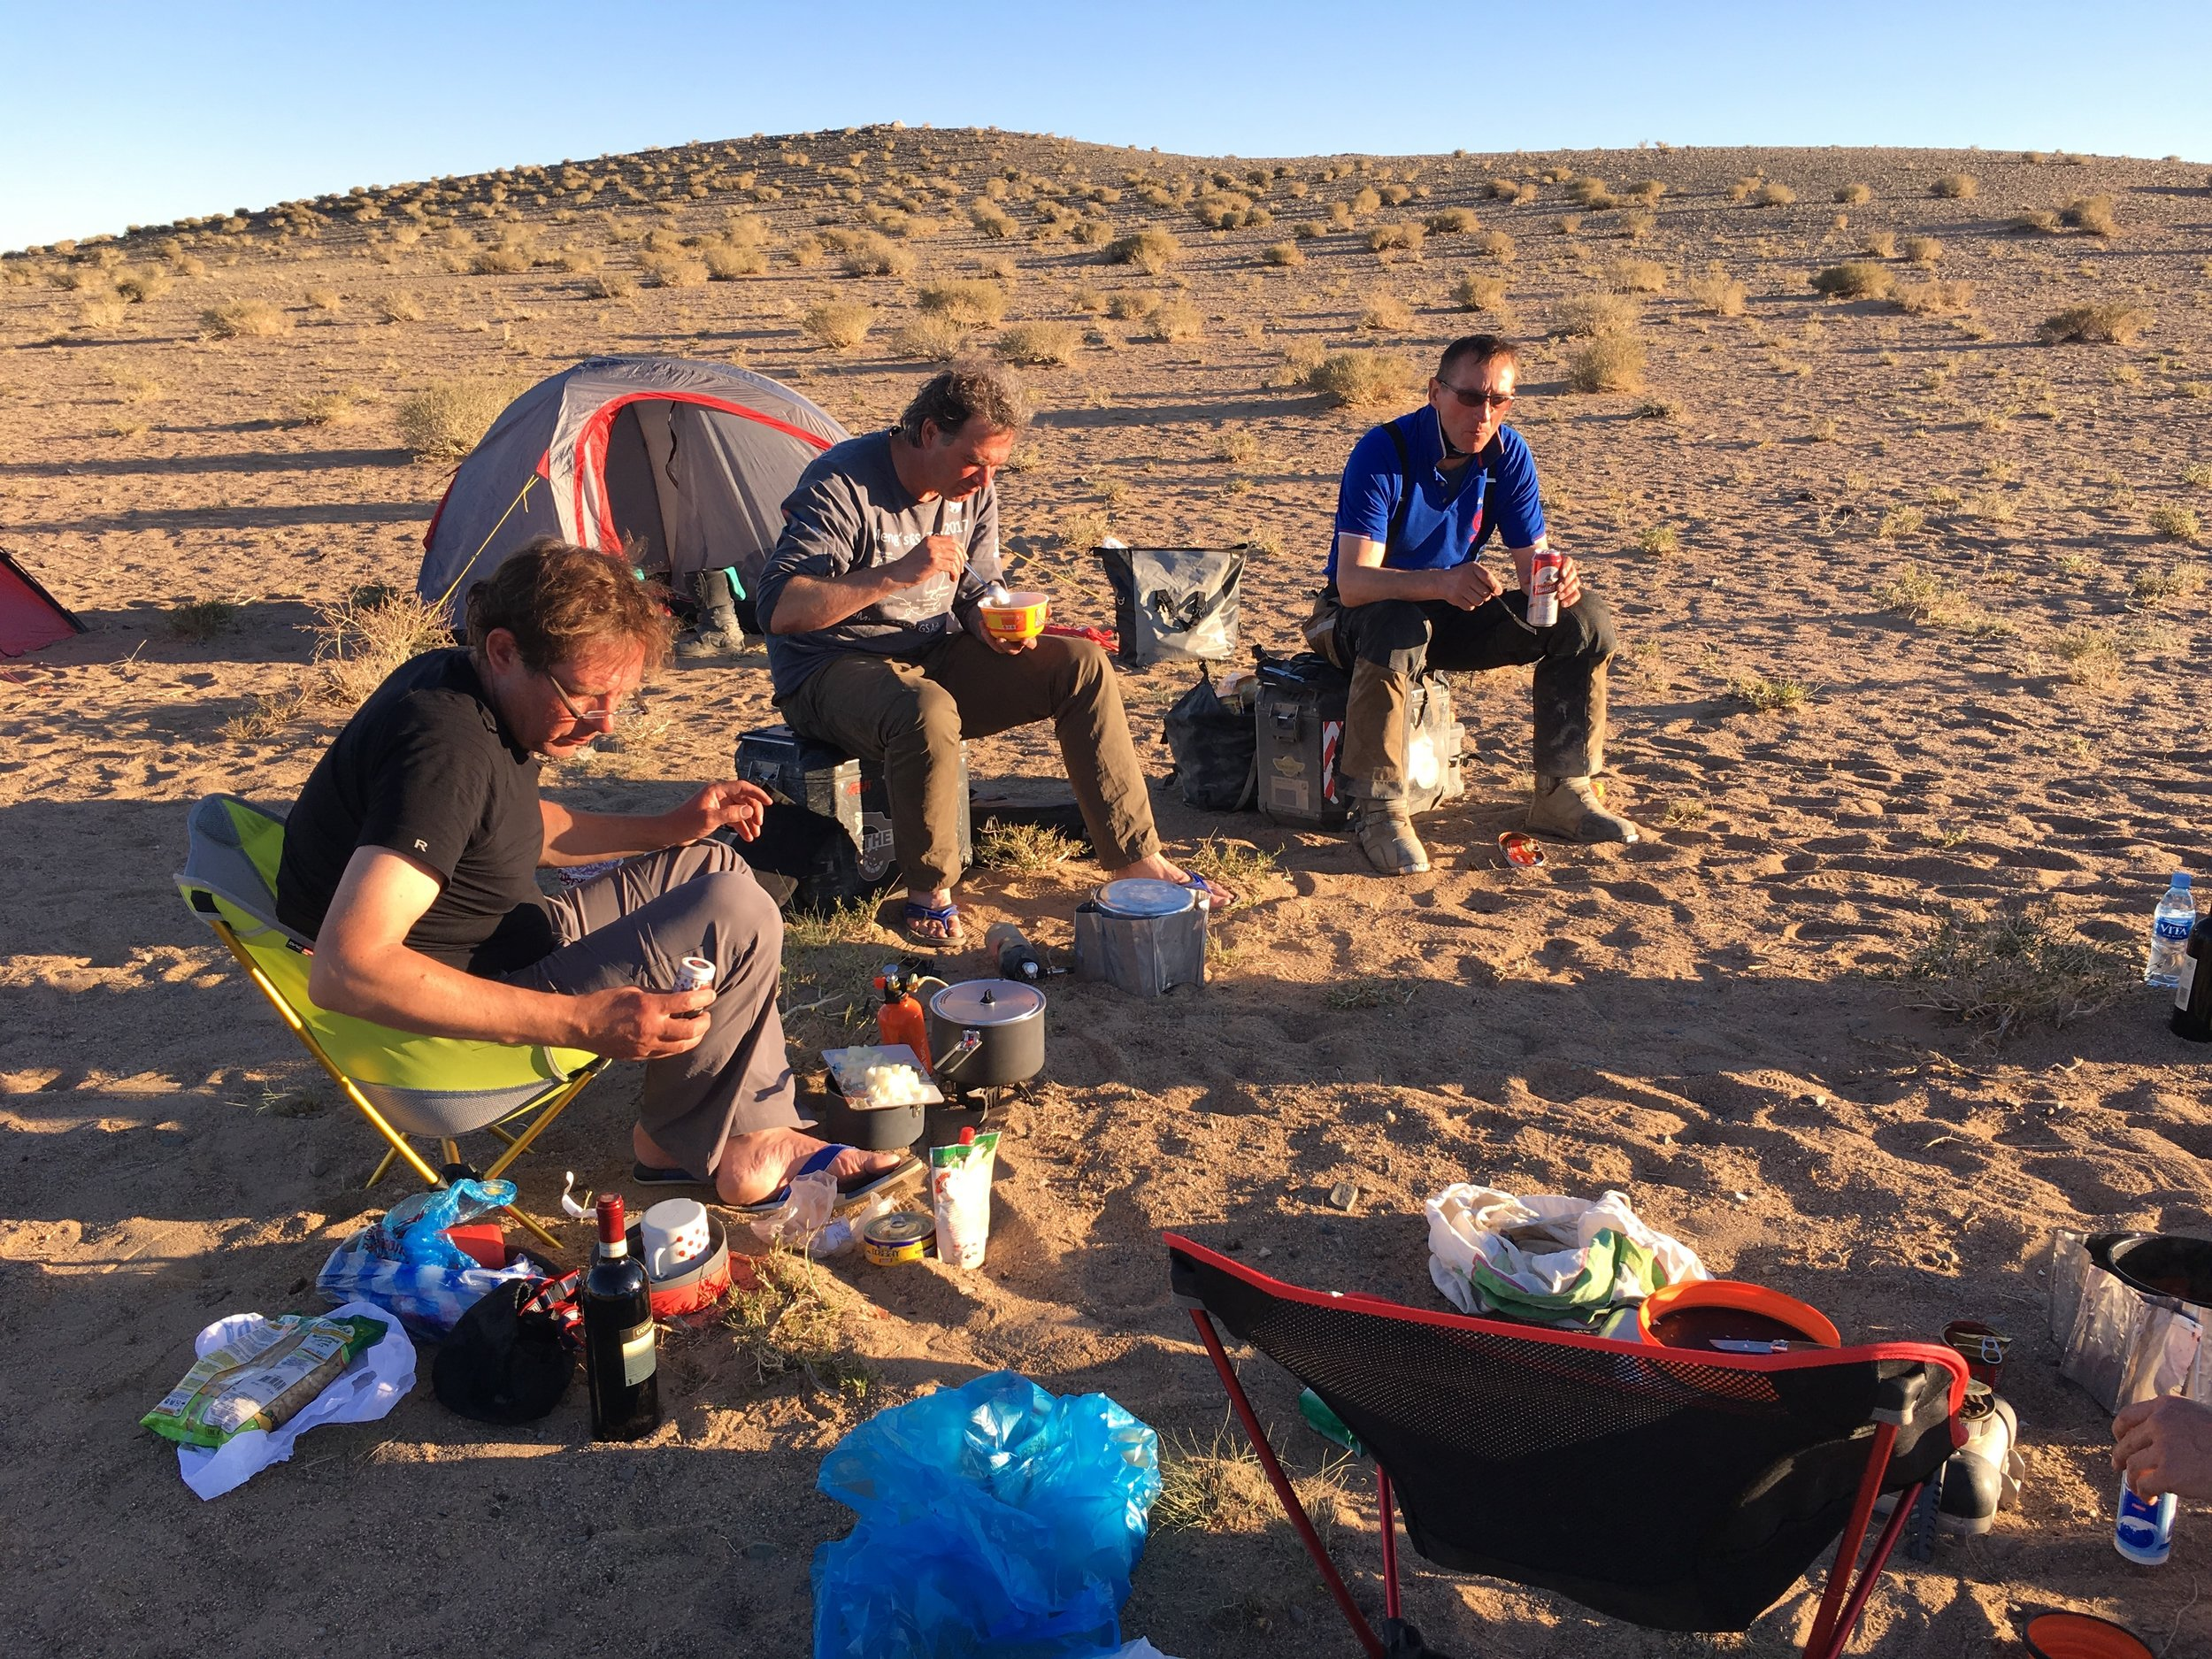 Sooner or later, the pannier-guys always envy the chair-guys. Scene from Mongolia with our friends Peter, Florian and Ulli.